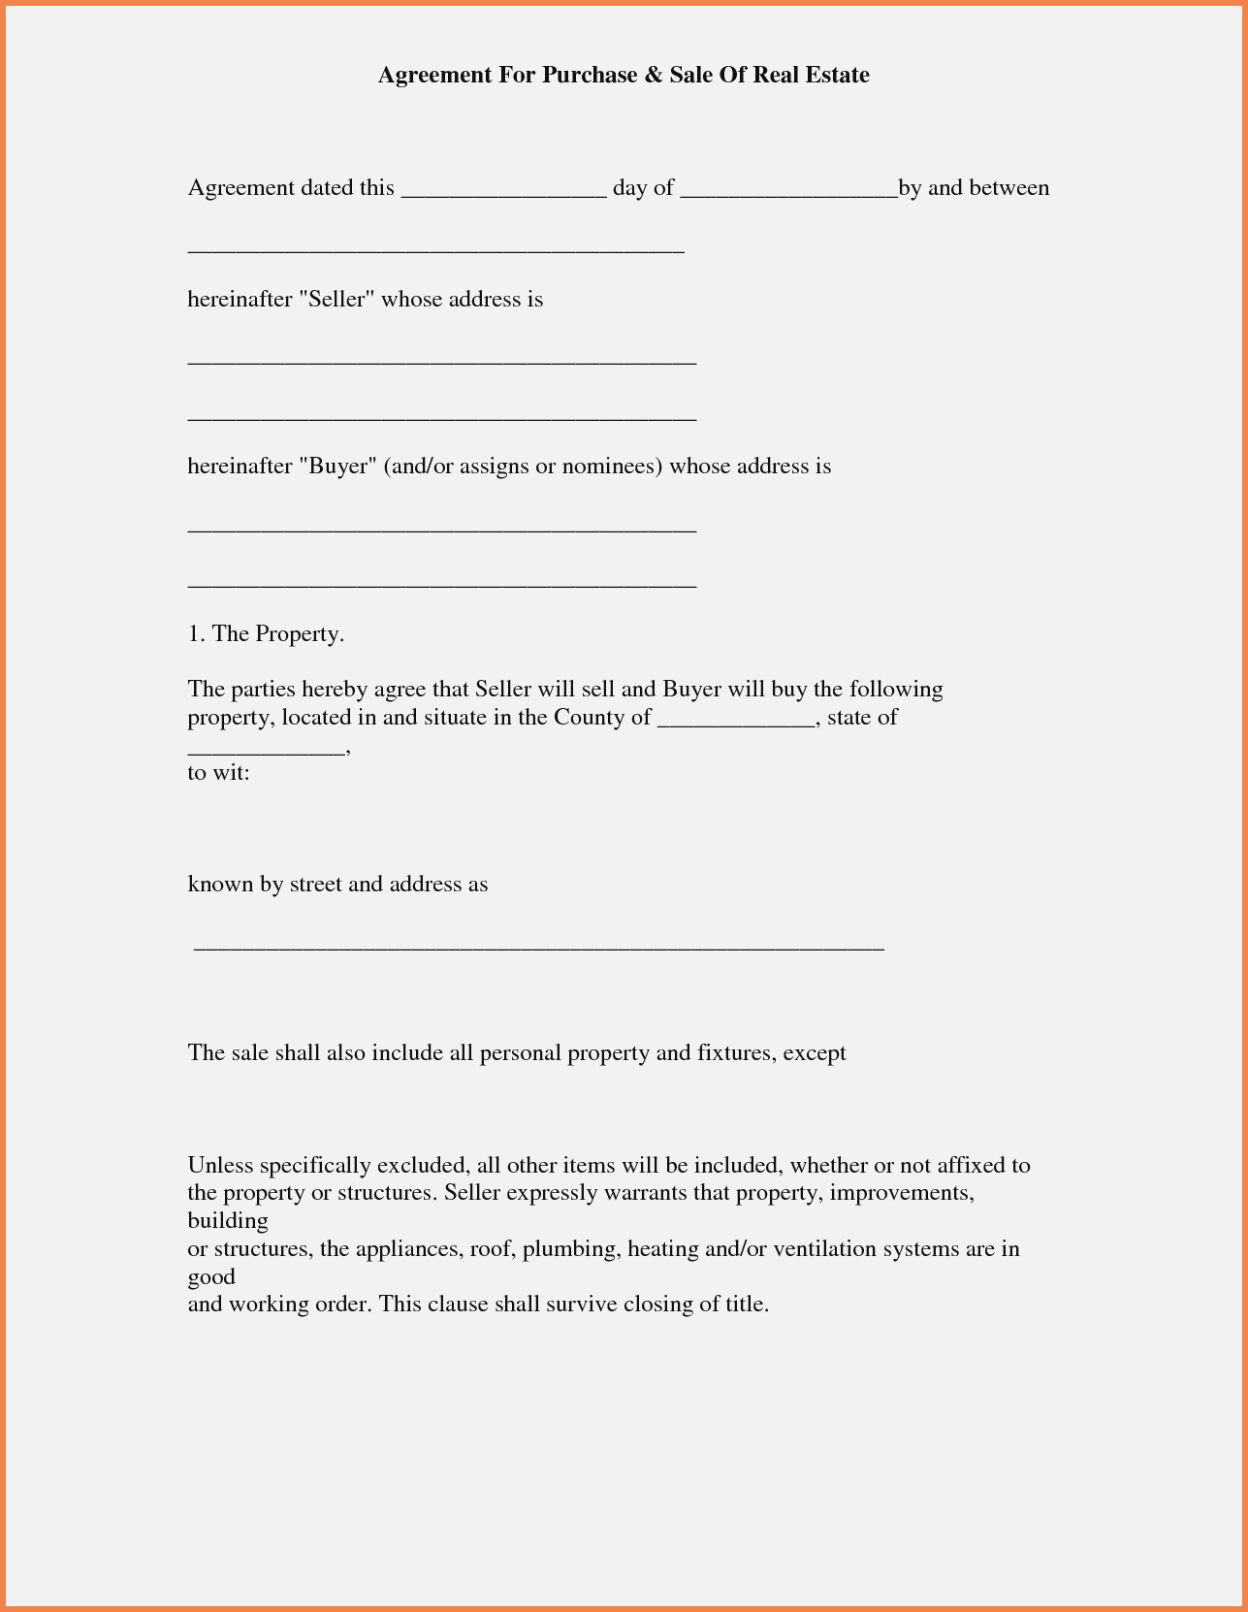 Purchase Agreement Contract Form Good Free Printable Real Estate - Free Printable Real Estate Contracts